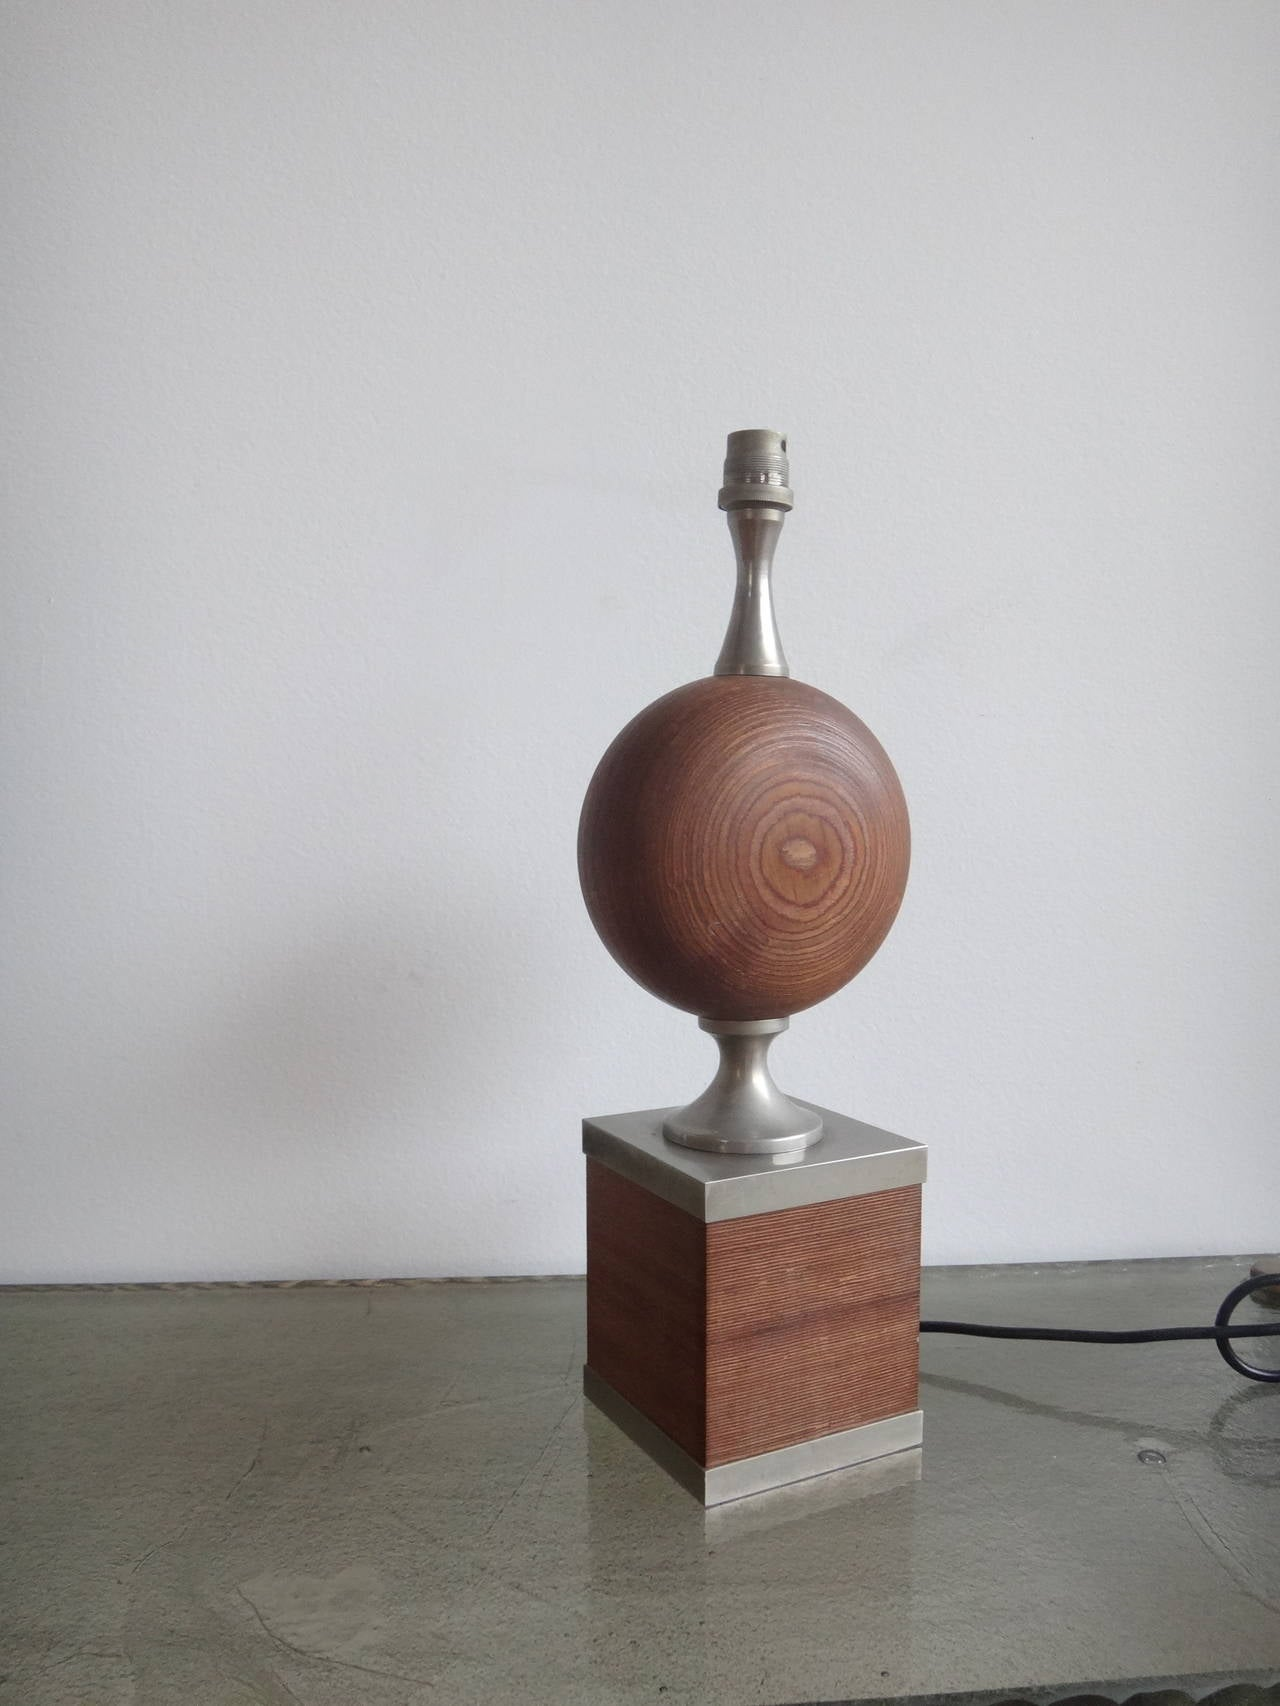 Rare Maison Barbier Wood and Steel Lamp - France 1970s - Ipso Facto For Sale 1